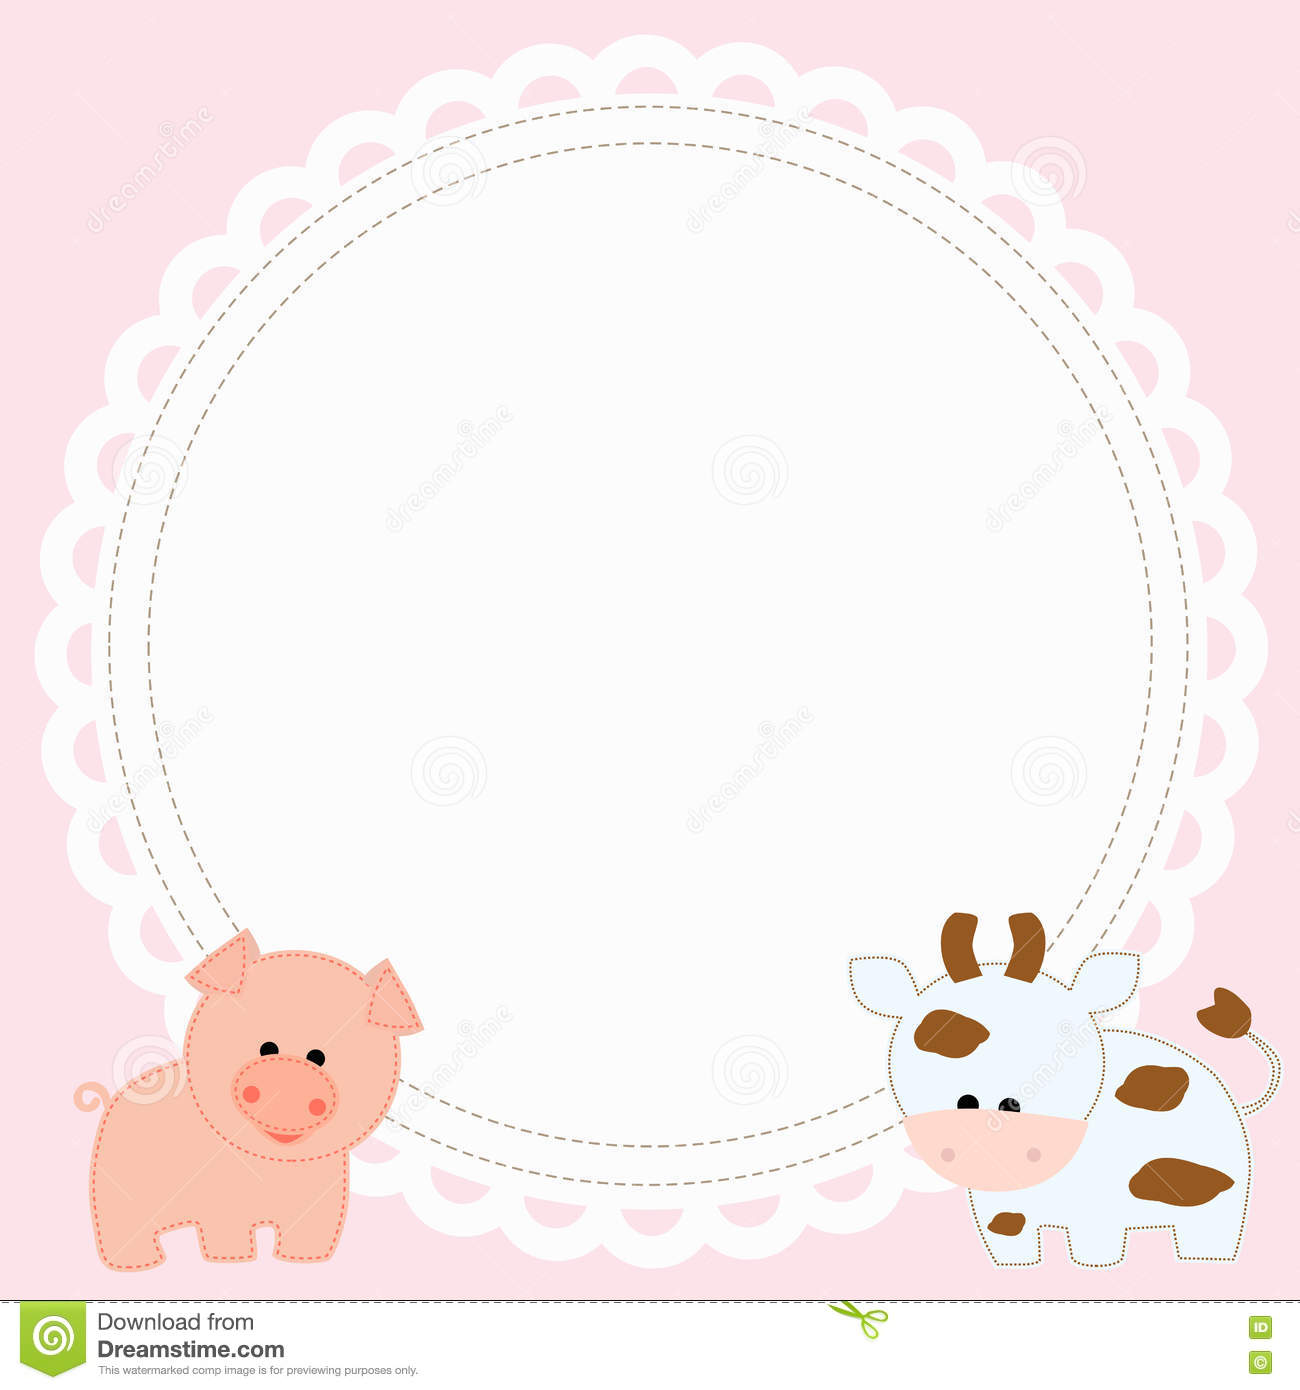 children 39 s round photo frame in the form of a swipe on a pink